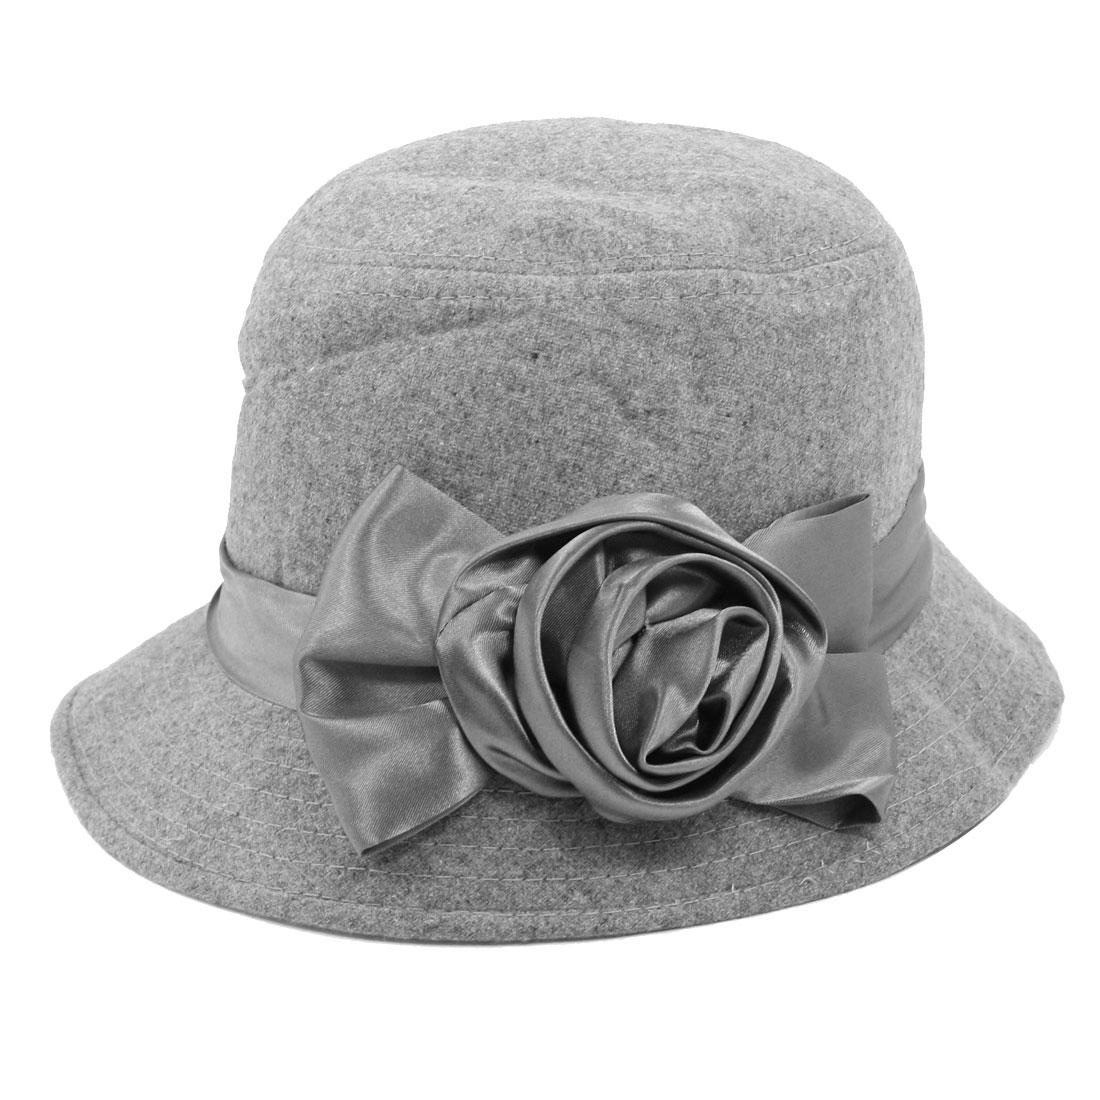 Women Travel Flower Bowtie Ribbon Accent Cloche Bucket Hat Cap Gray